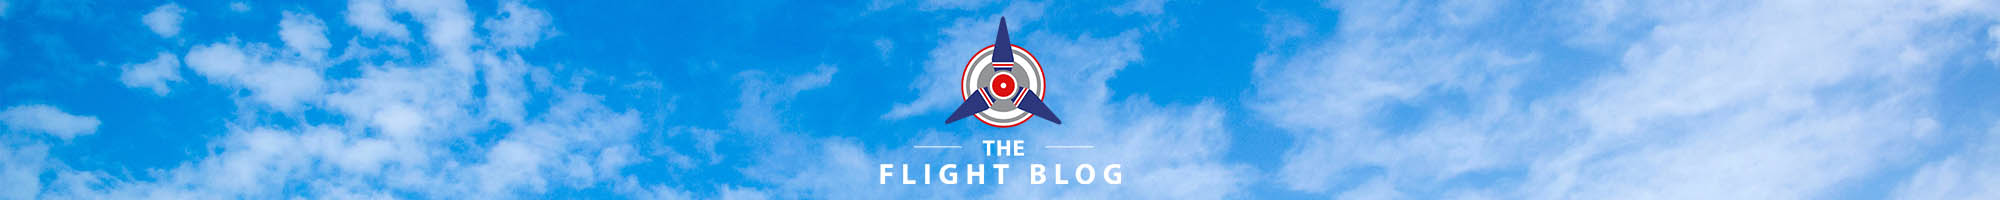 The Flight Blog - Read Articles